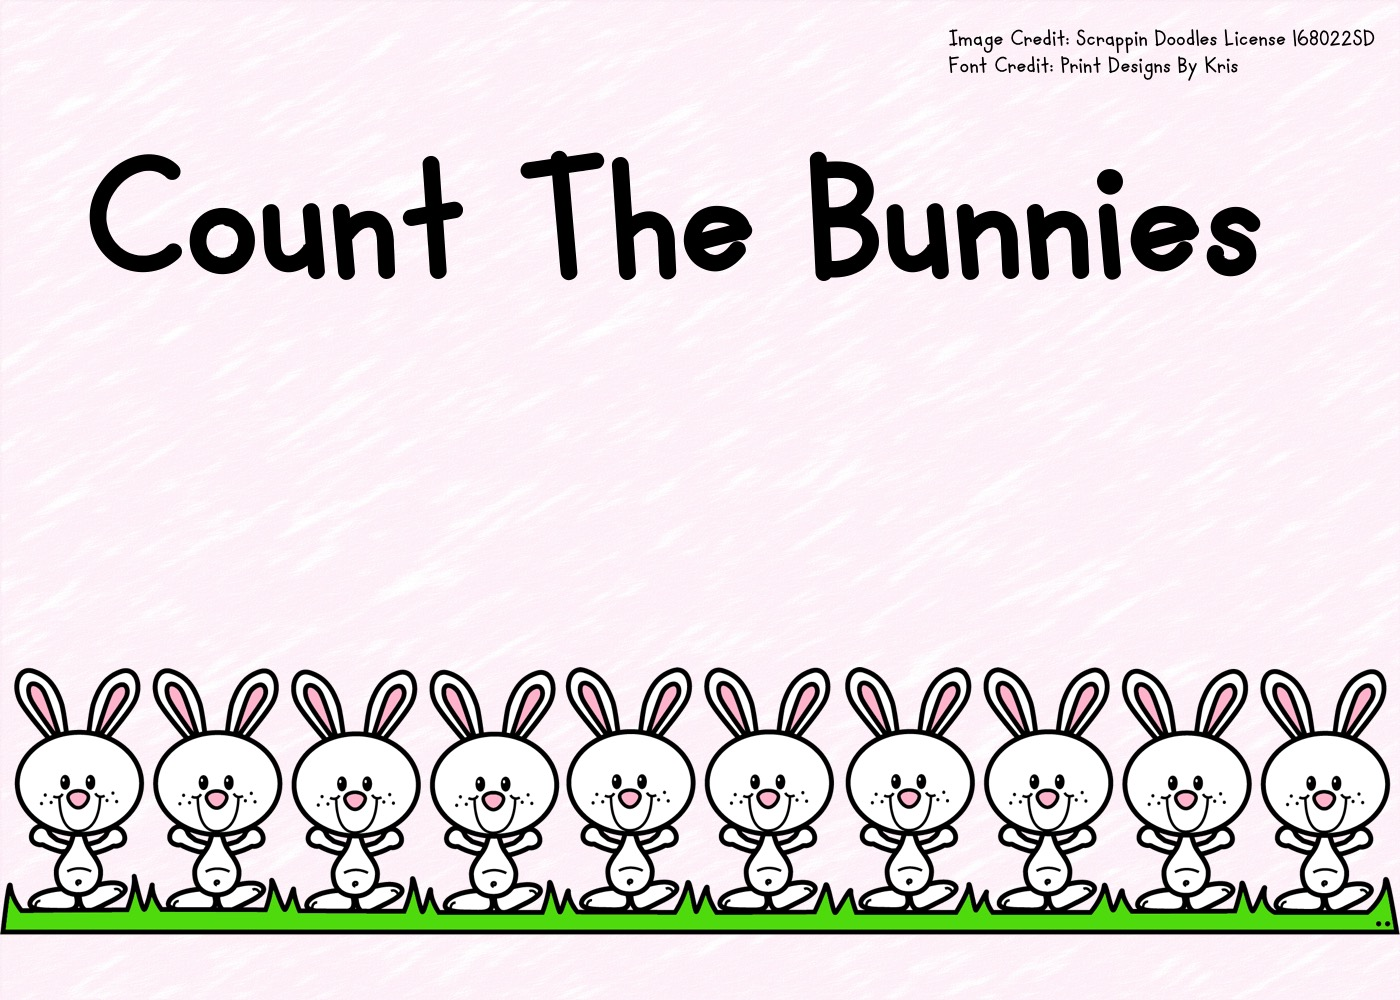 - Count The Bunnies 1-10 Free Printable Worksheets For Kids